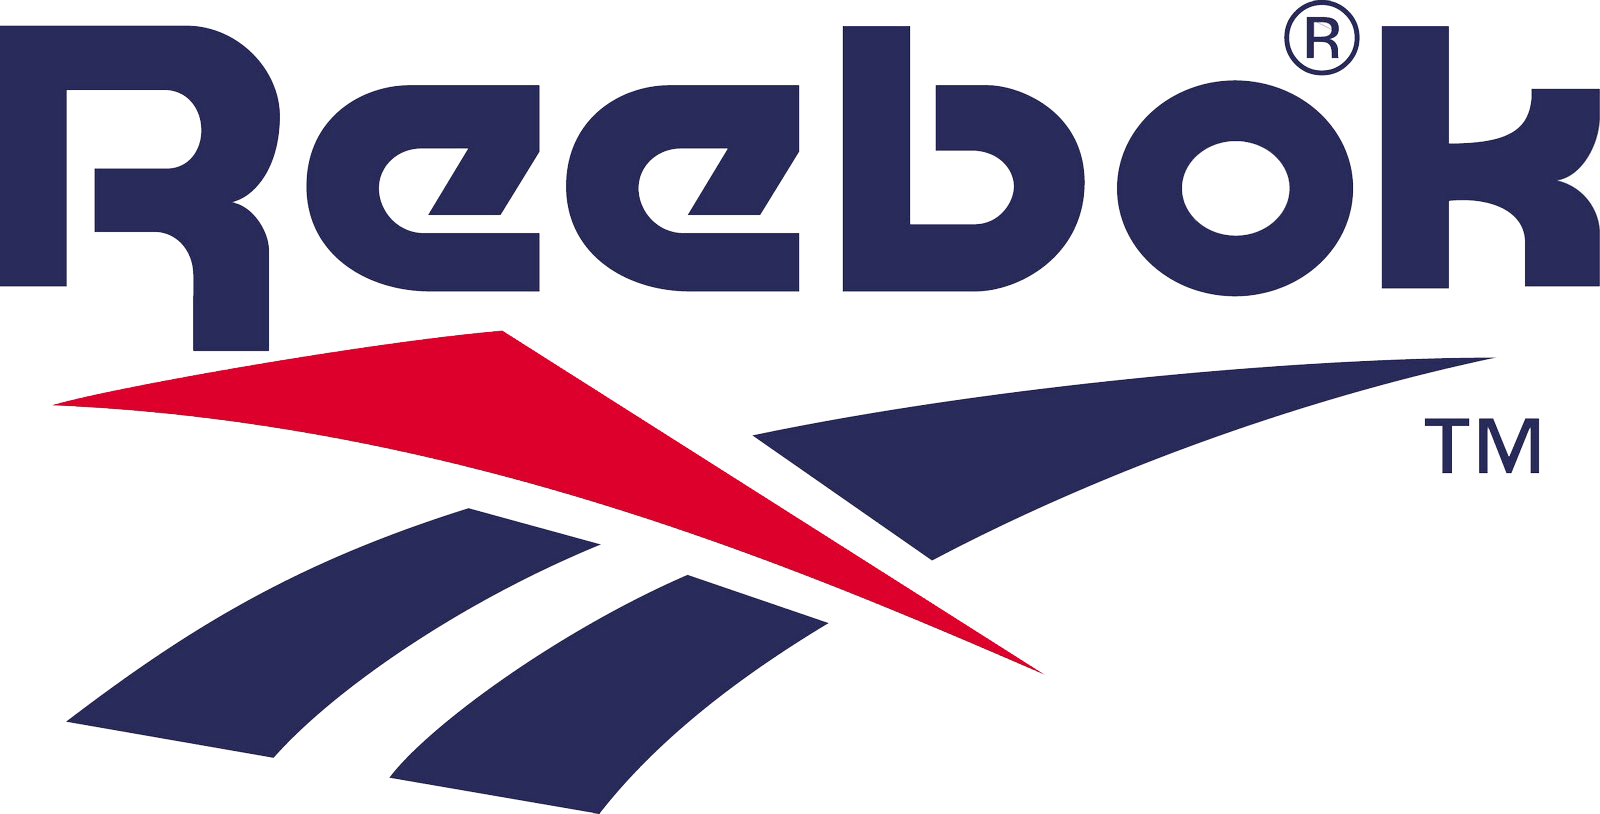 Reebok HD Logo Picture #7036